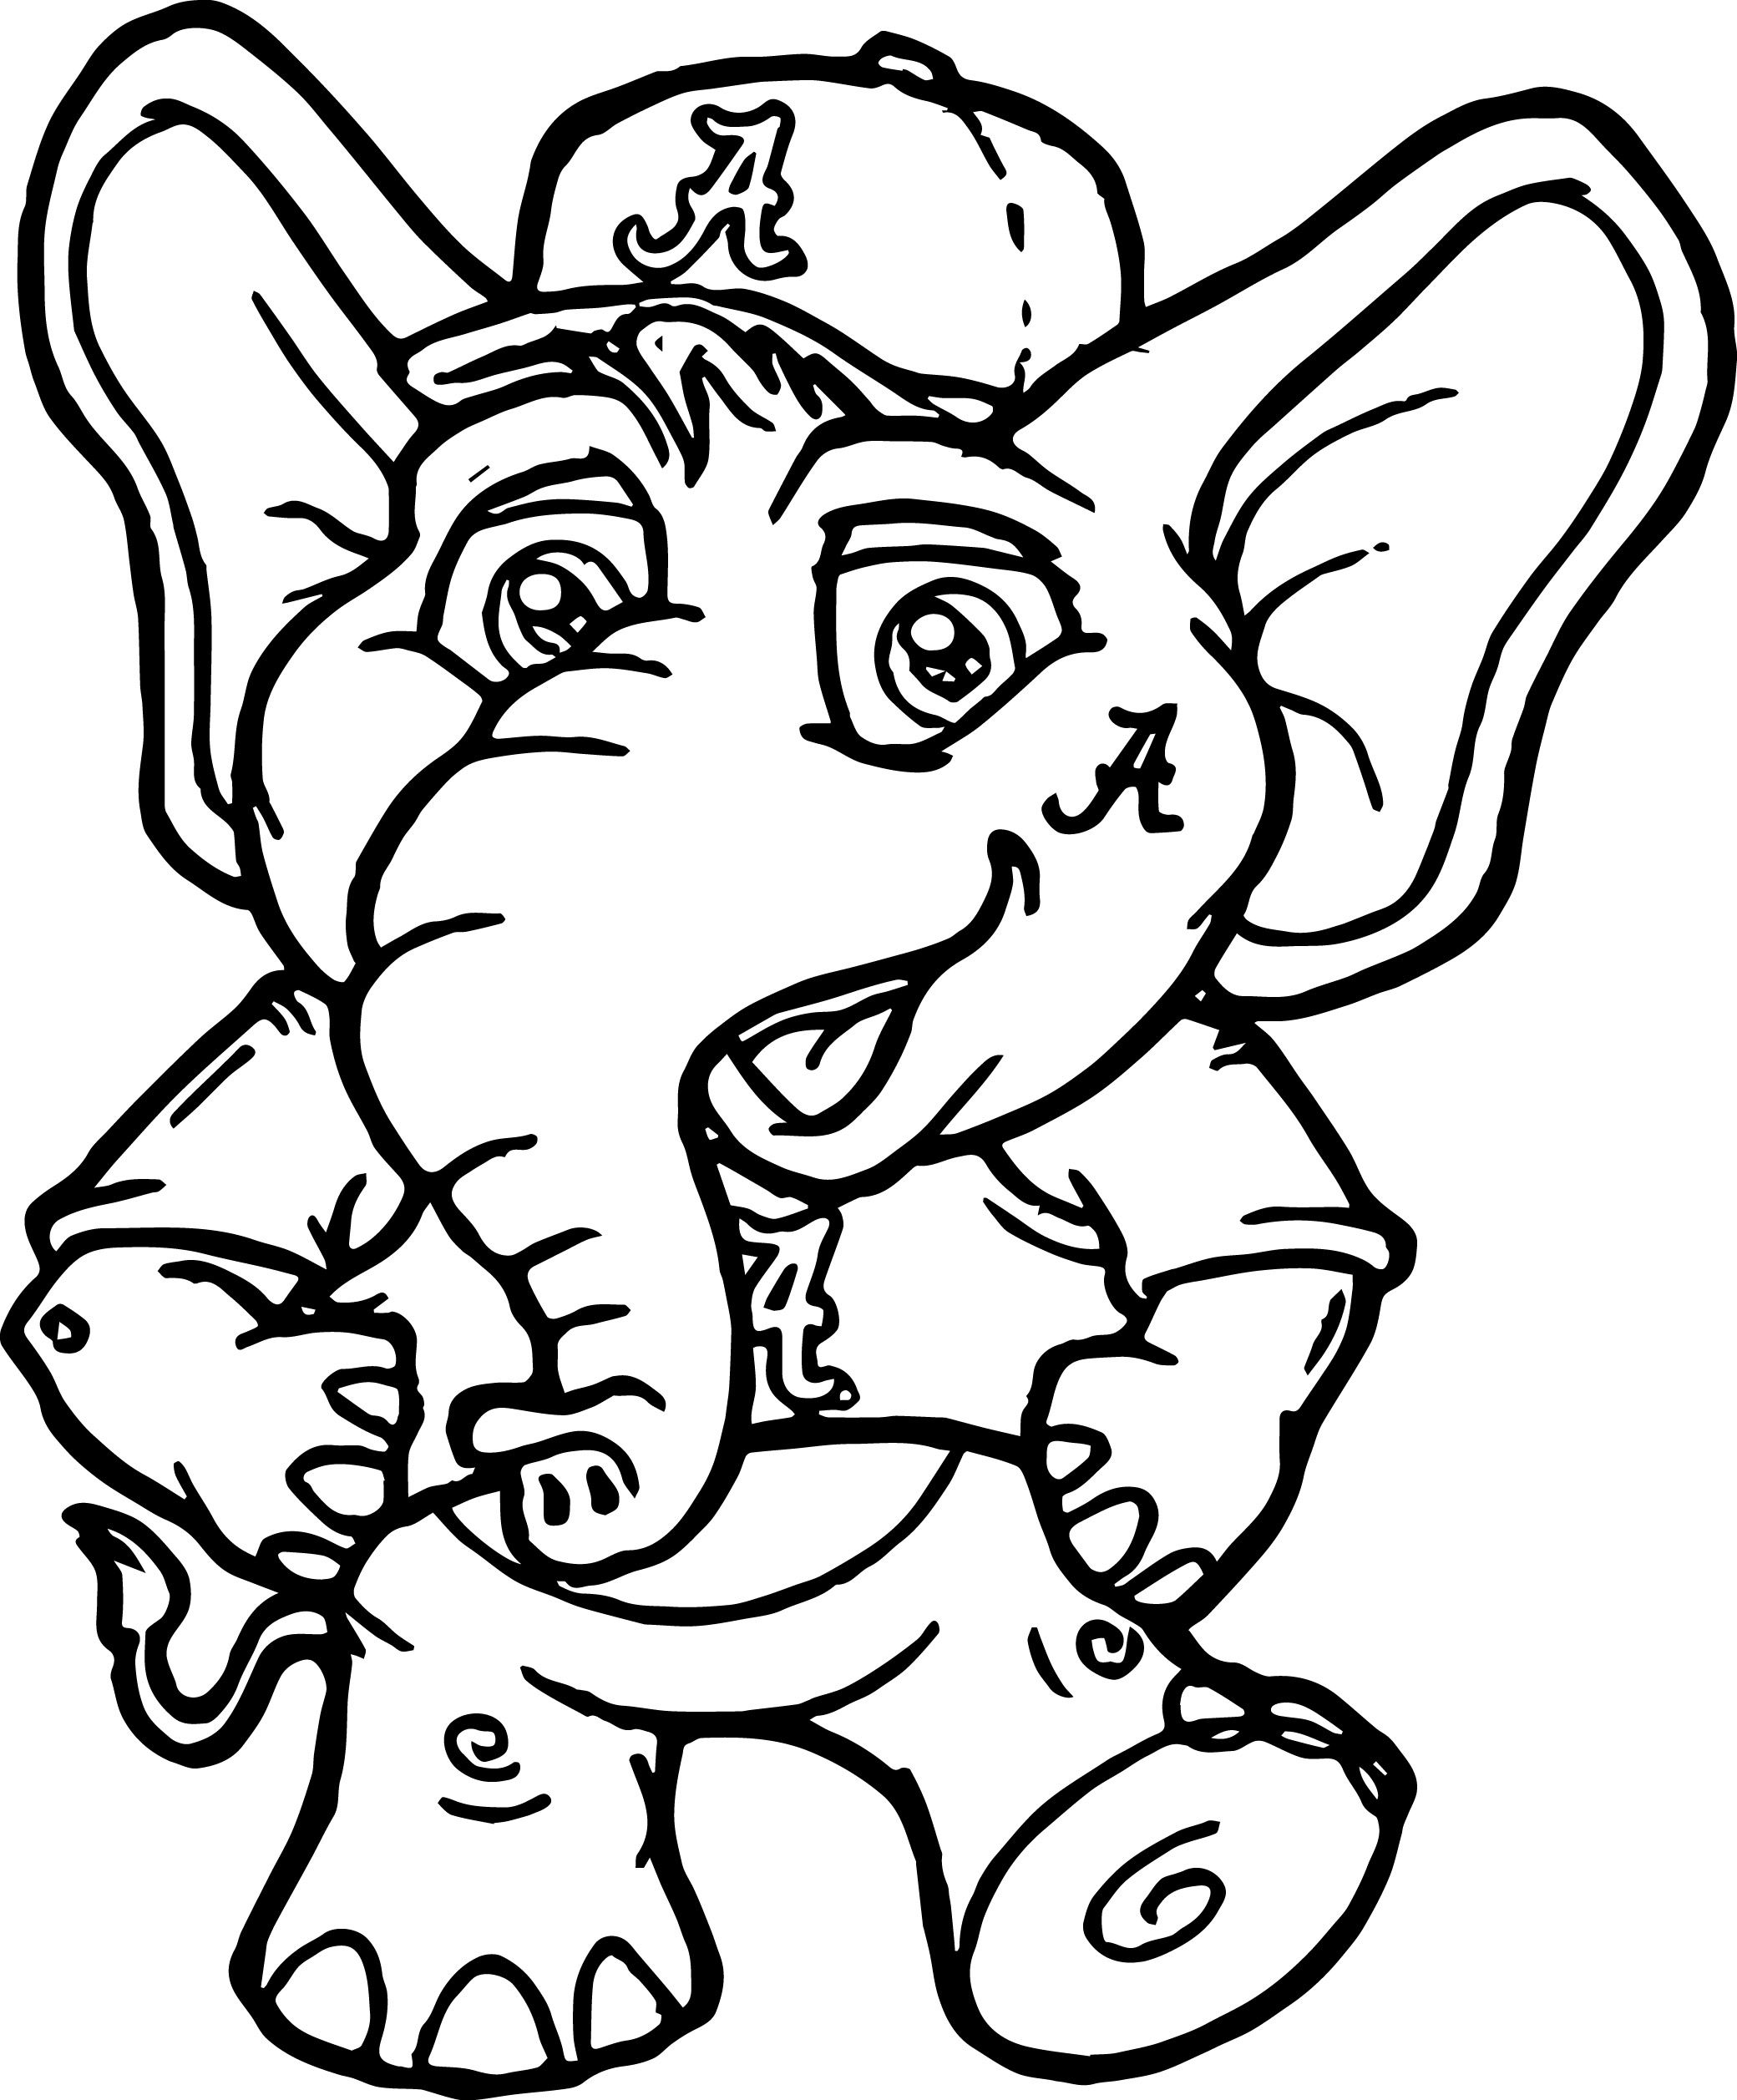 2080x2515 Amphibian Cartoon Frog Coloring Page Alabama Football, Alabama